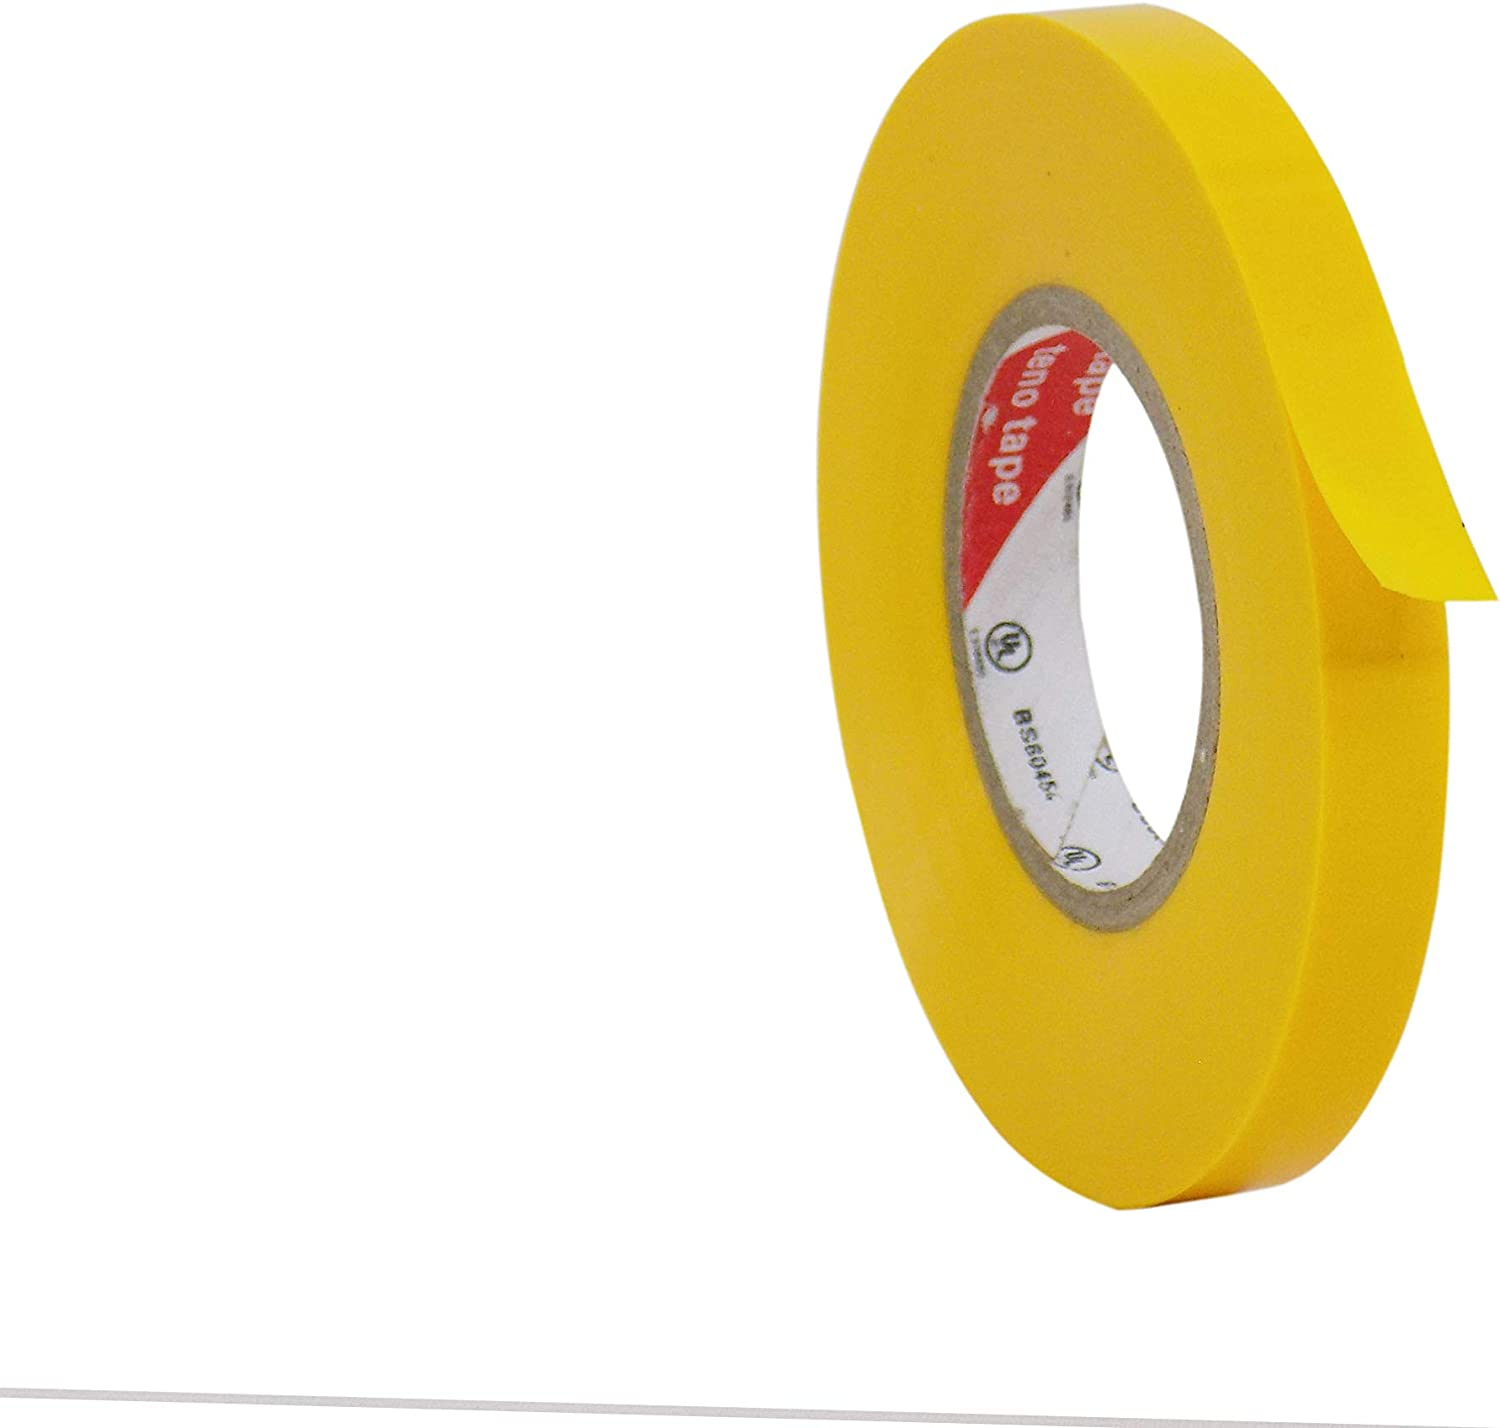 MAT Professional Grade Recommendation Thin Electrical Tape Yellow - x Don't miss the campaign 3 8 6 in.